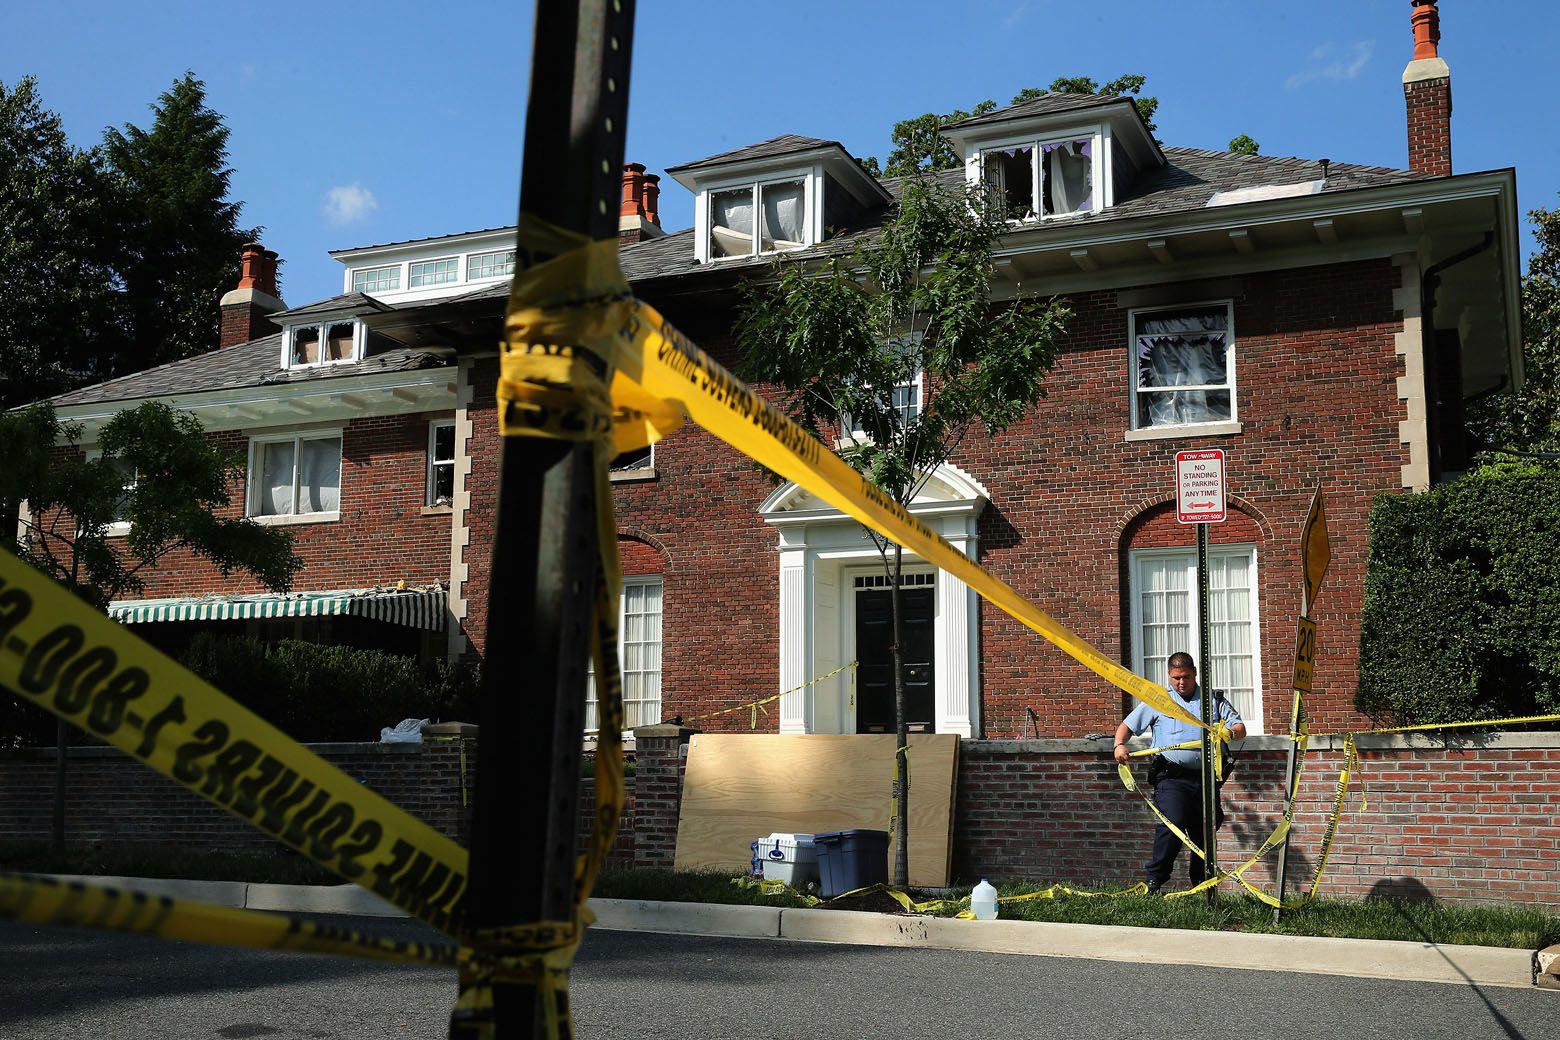 WASHINGTON, DC - MAY 19:  District of Columbia Metropolitan Police maintain a perimeter around the house on the 3200 block of Woodland Drive NW May 19, 2015 in Washington, DC. Firefighters discovered the bodies of Savvas Savopoulos, 46, his wife Amy, 47, their 10-year-old son Philip, and the housekeeper, Veralicia Figueroa, 57, last Thursday afternoon when they responded to a fire at the house. Two Savopoulos daughters were away in boarding school at the time. Investigators have ruled the deaths homicides and say they could continue to collect evidence at the house for another week. (Photo by Chip Somodevilla/Getty Images)